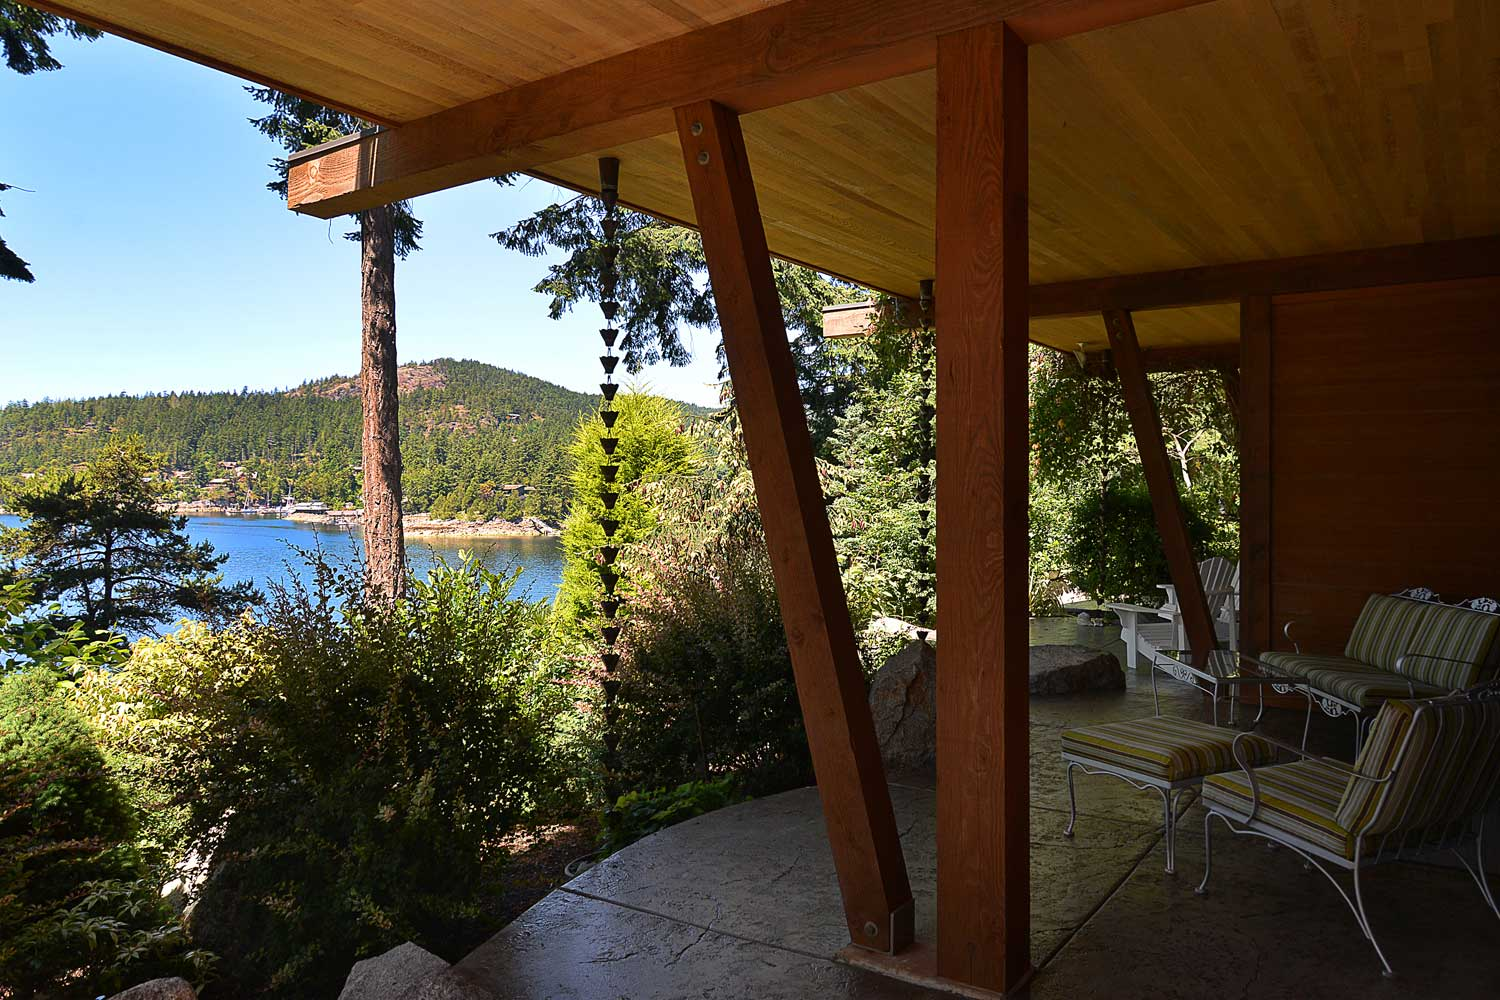 Patio with lounge chairs overlooking the water at the Pender harbour house rental at John Henry's Marina and Resort.